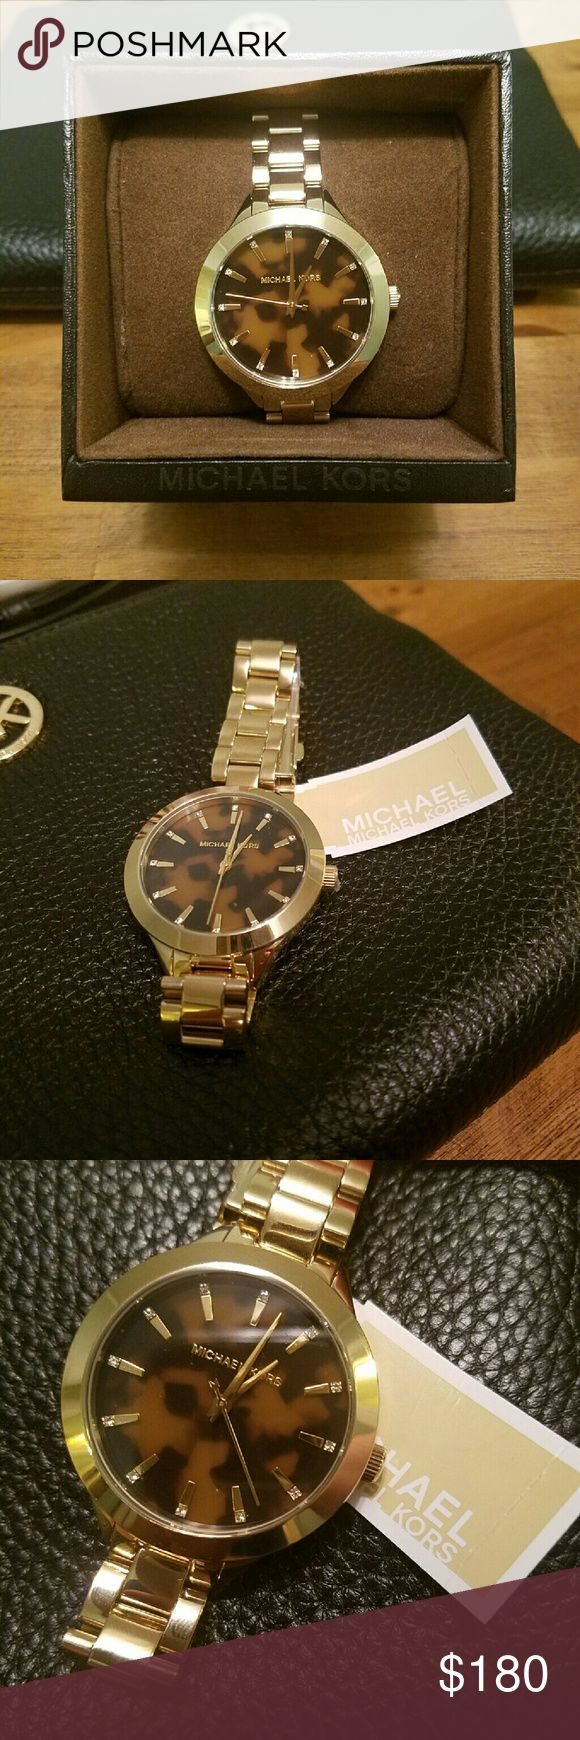 Michael Kors Tortoise Shell Watch This is a Michael Kors women's watch featuring a Tortoise shell face. It is NWT. I have the box as well. Michael Kors Accessories Watches   Supernatural Style